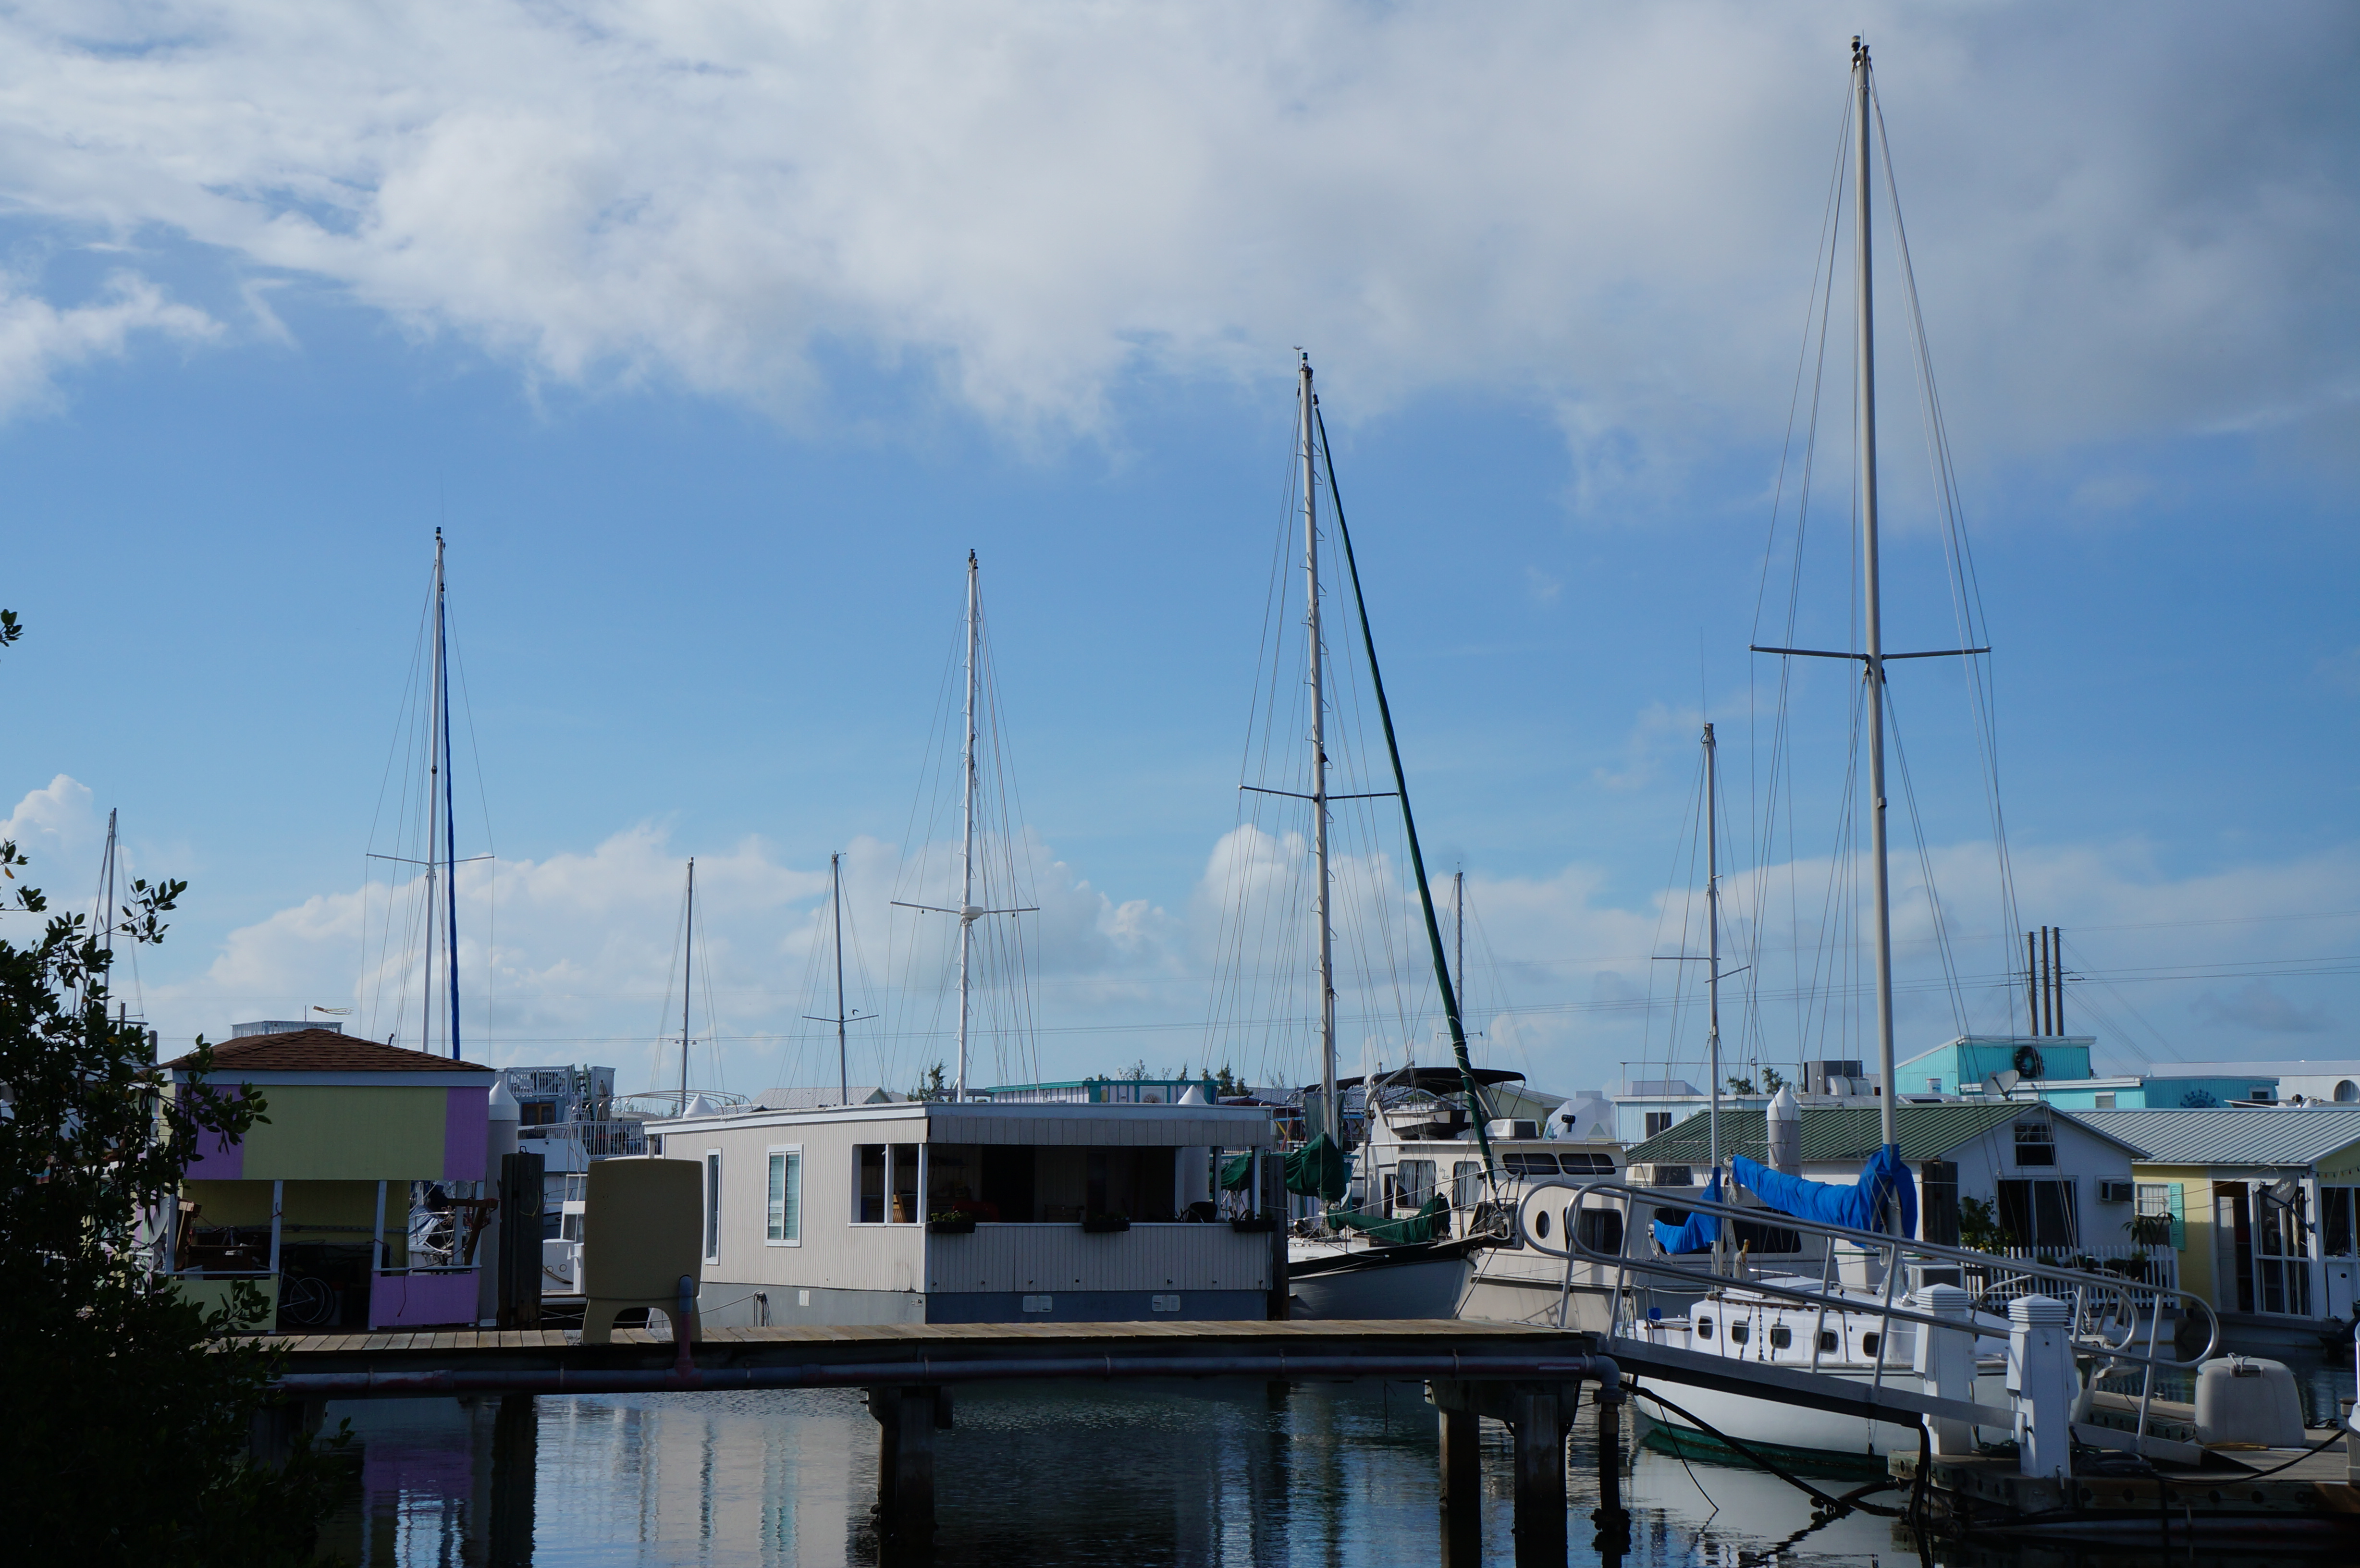 KW City Marina At Garrison Bight